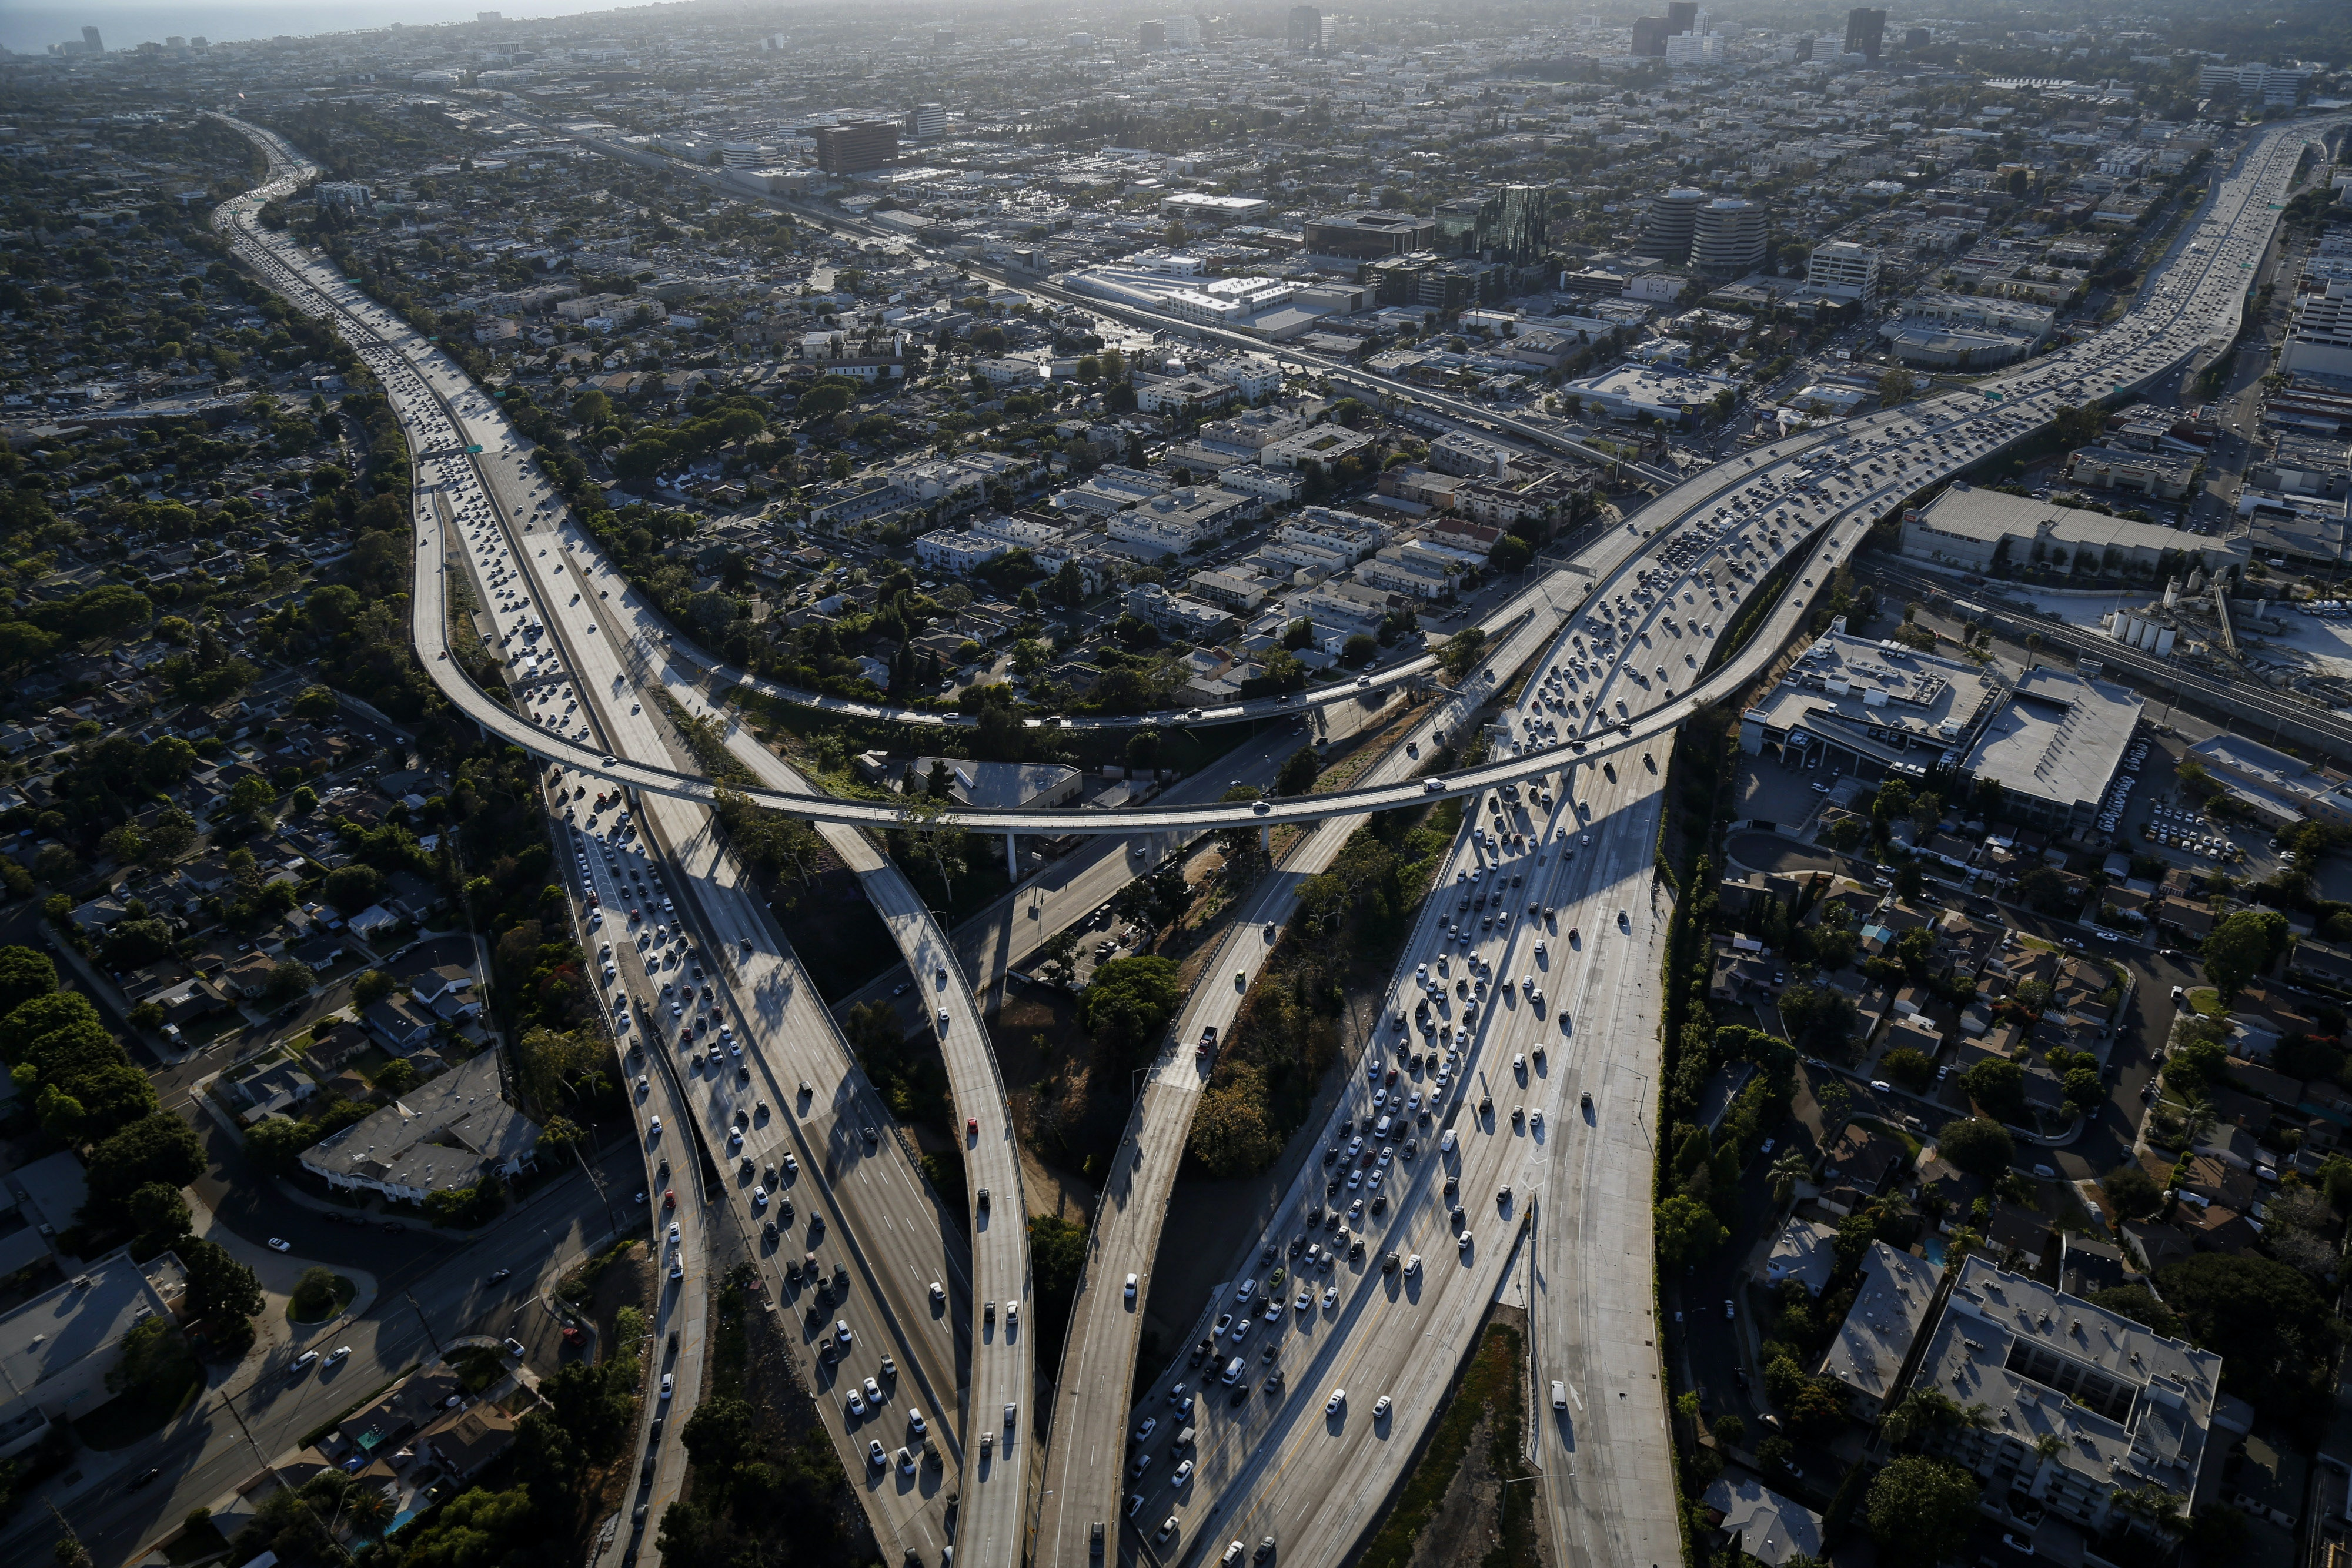 Vehicles sit in rush hour traffic between the Interstate 405 and 10 freeways in this aerial photograph taken over Los Angeles, California, U.S., on Friday, July 10, 2015. The greater Los Angeles region routinely tops the list for annual traffic statistics of metropolitan areas for such measures as total congestion delays and congestion delays per peak-period traveler. Photographer: Patrick T. Fallon/Bloomberg via Getty Images